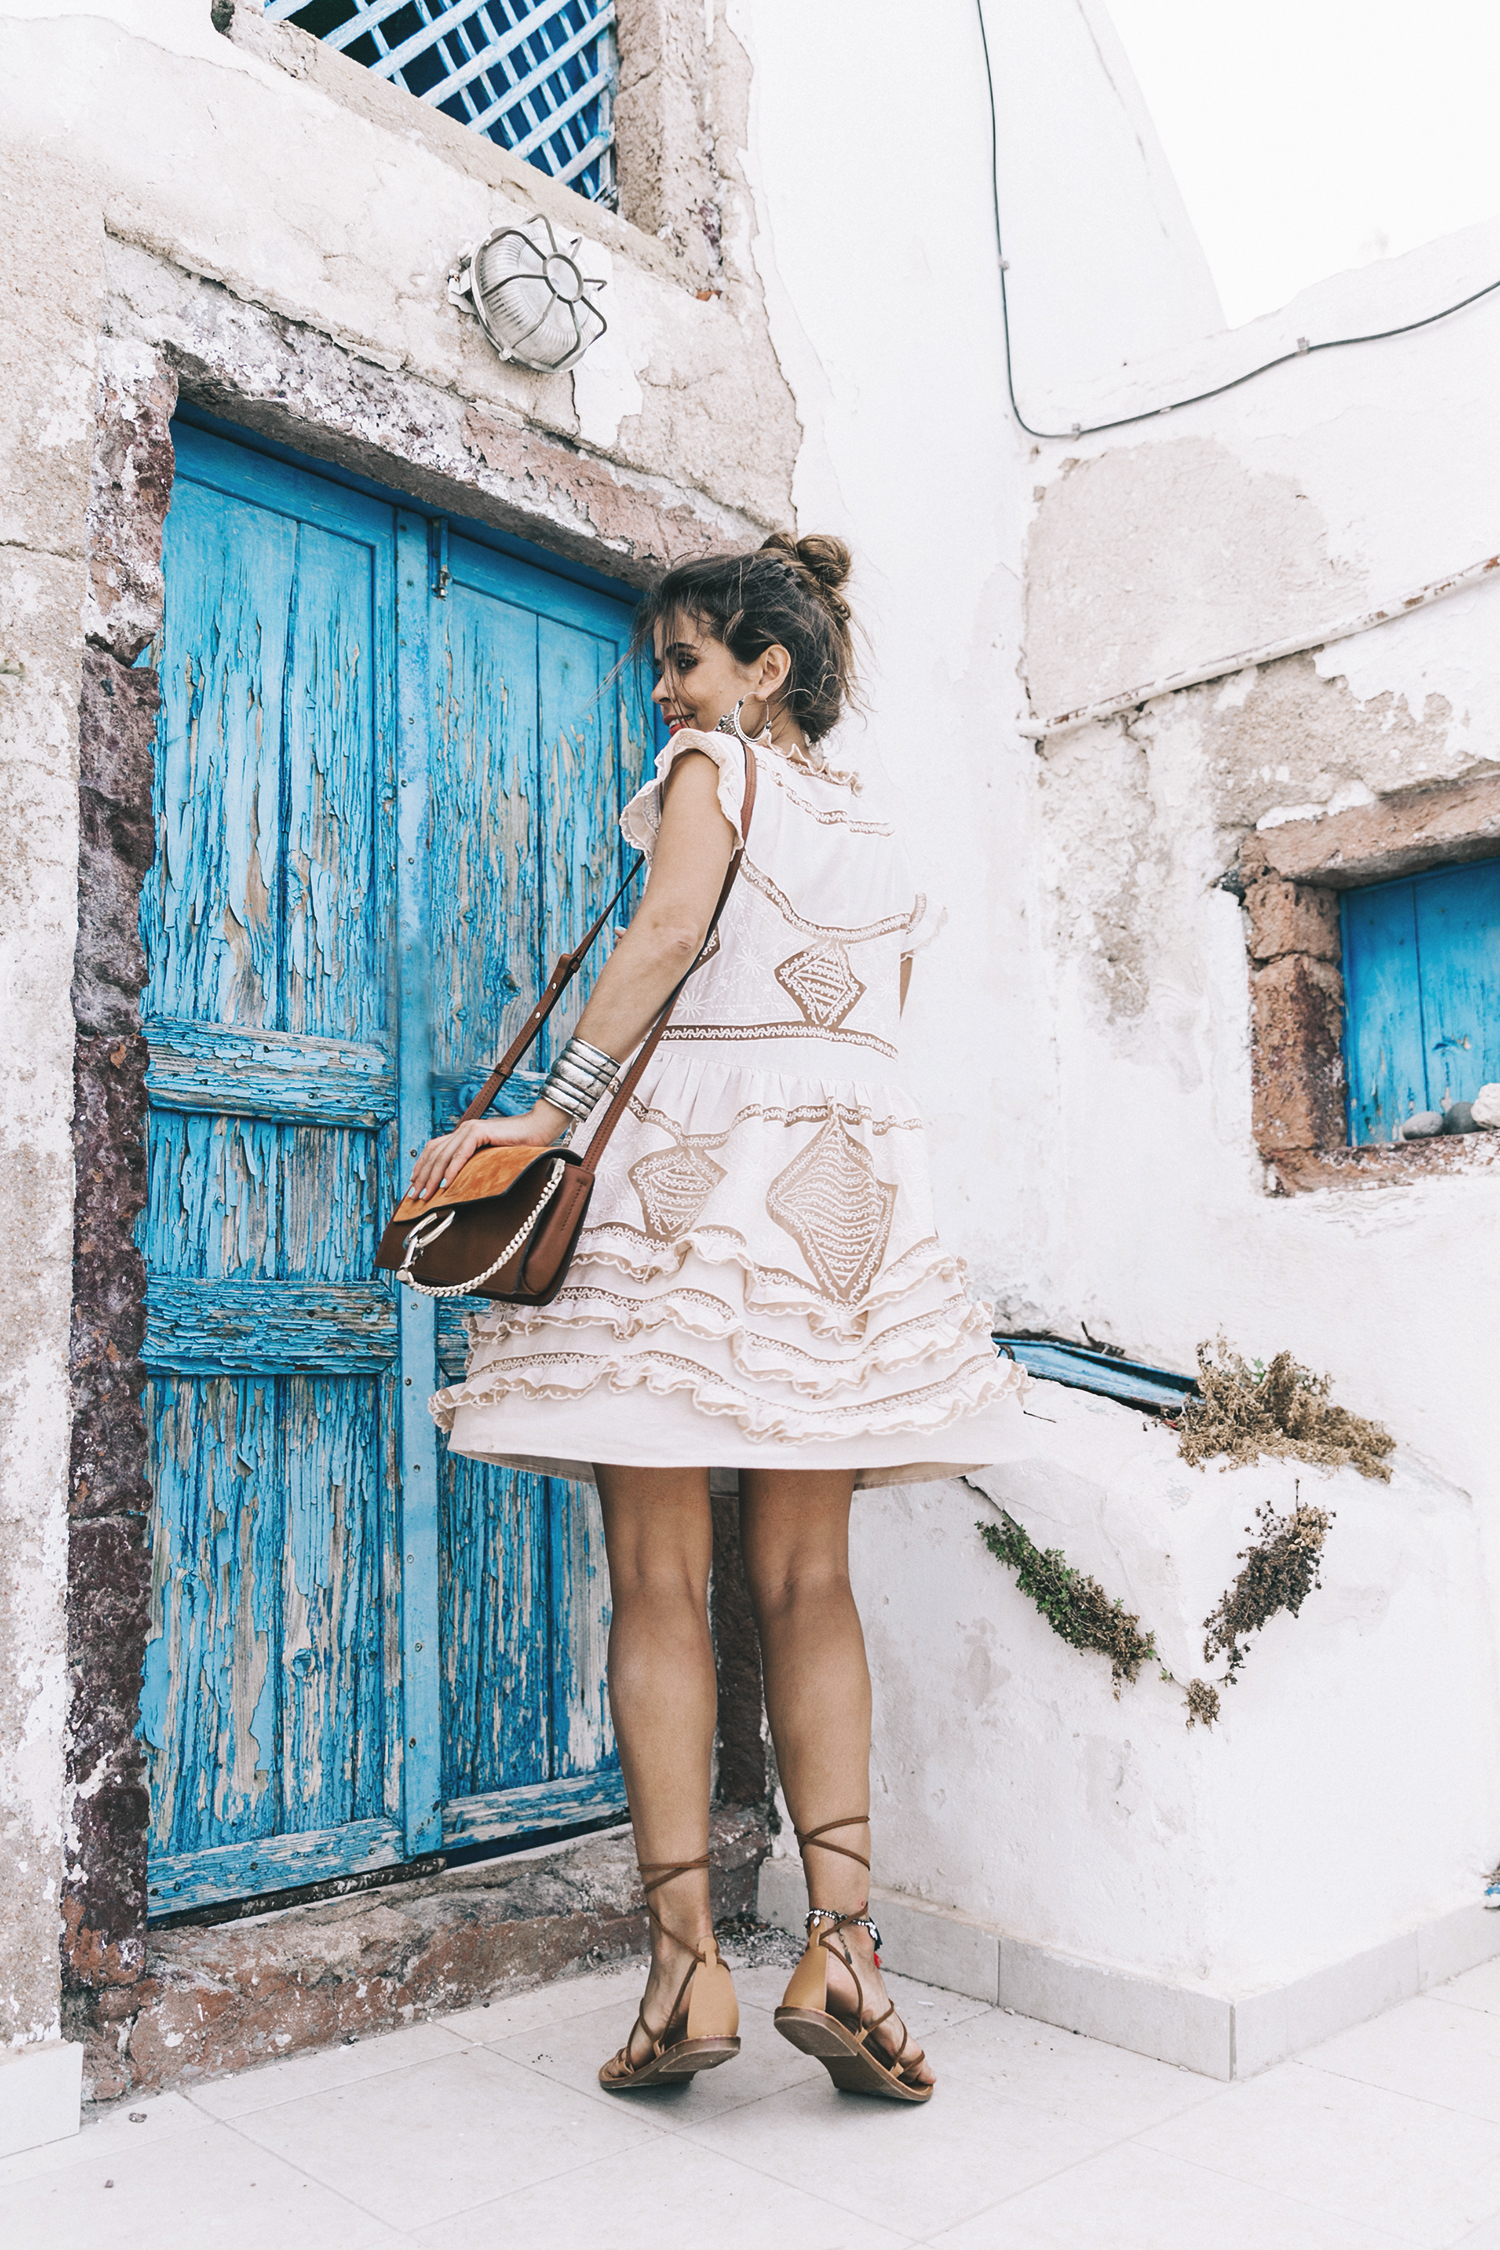 Chloe_Bag-Faye_Bag-For_Love_And_Lemons-Dress-Topknot-Soludos_Escapes-Soludos_Espadrilles-Summer-Santorini-Collage_Vintage-77